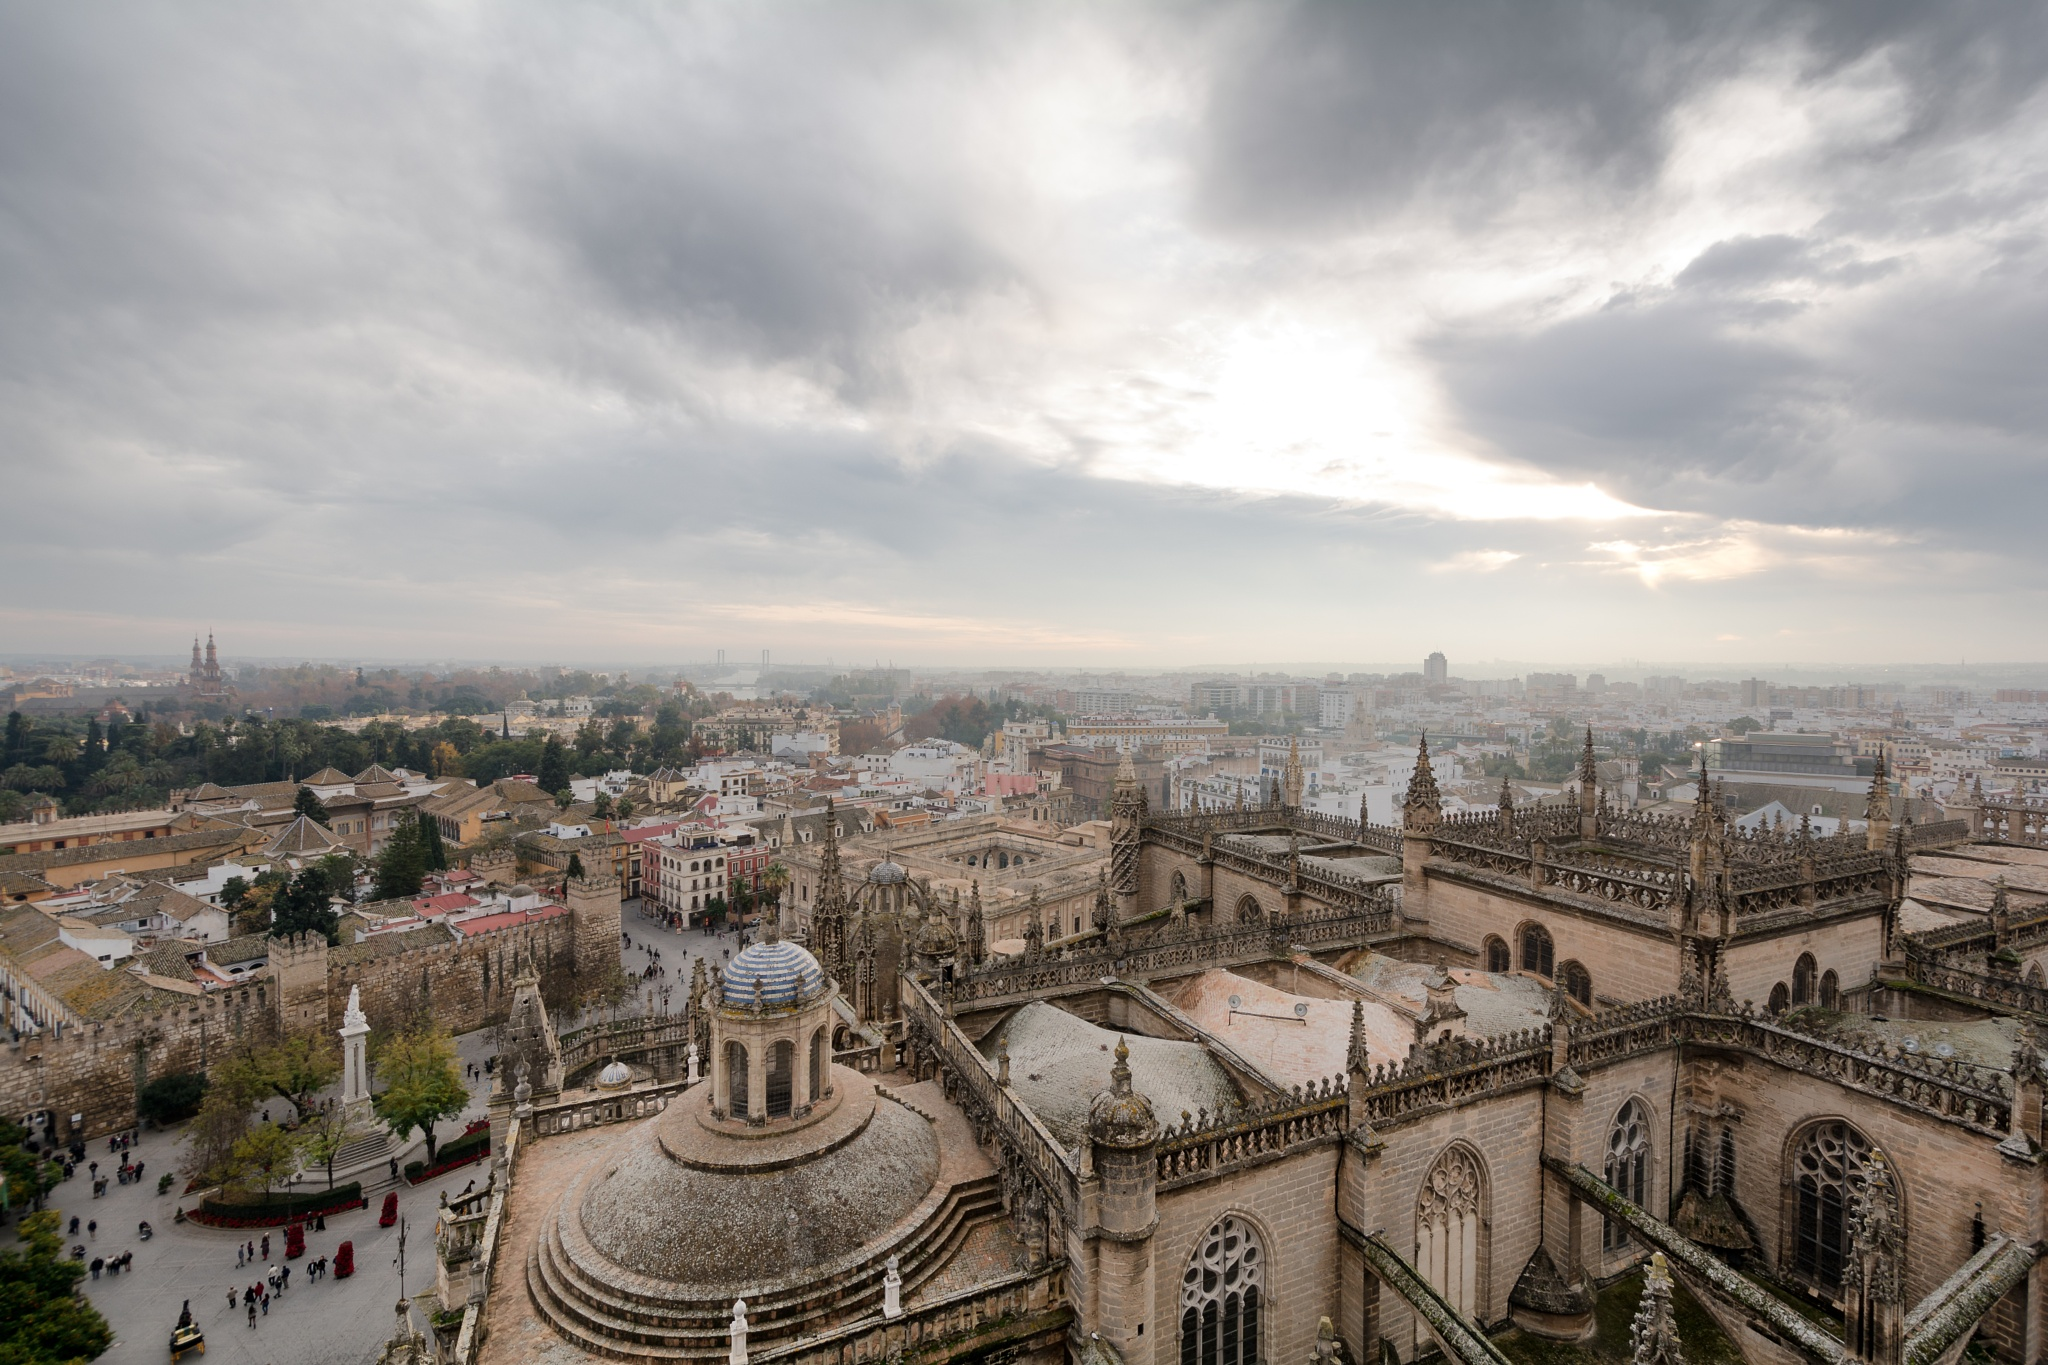 Top of the Giralda, Cathedral by Uiler Costa